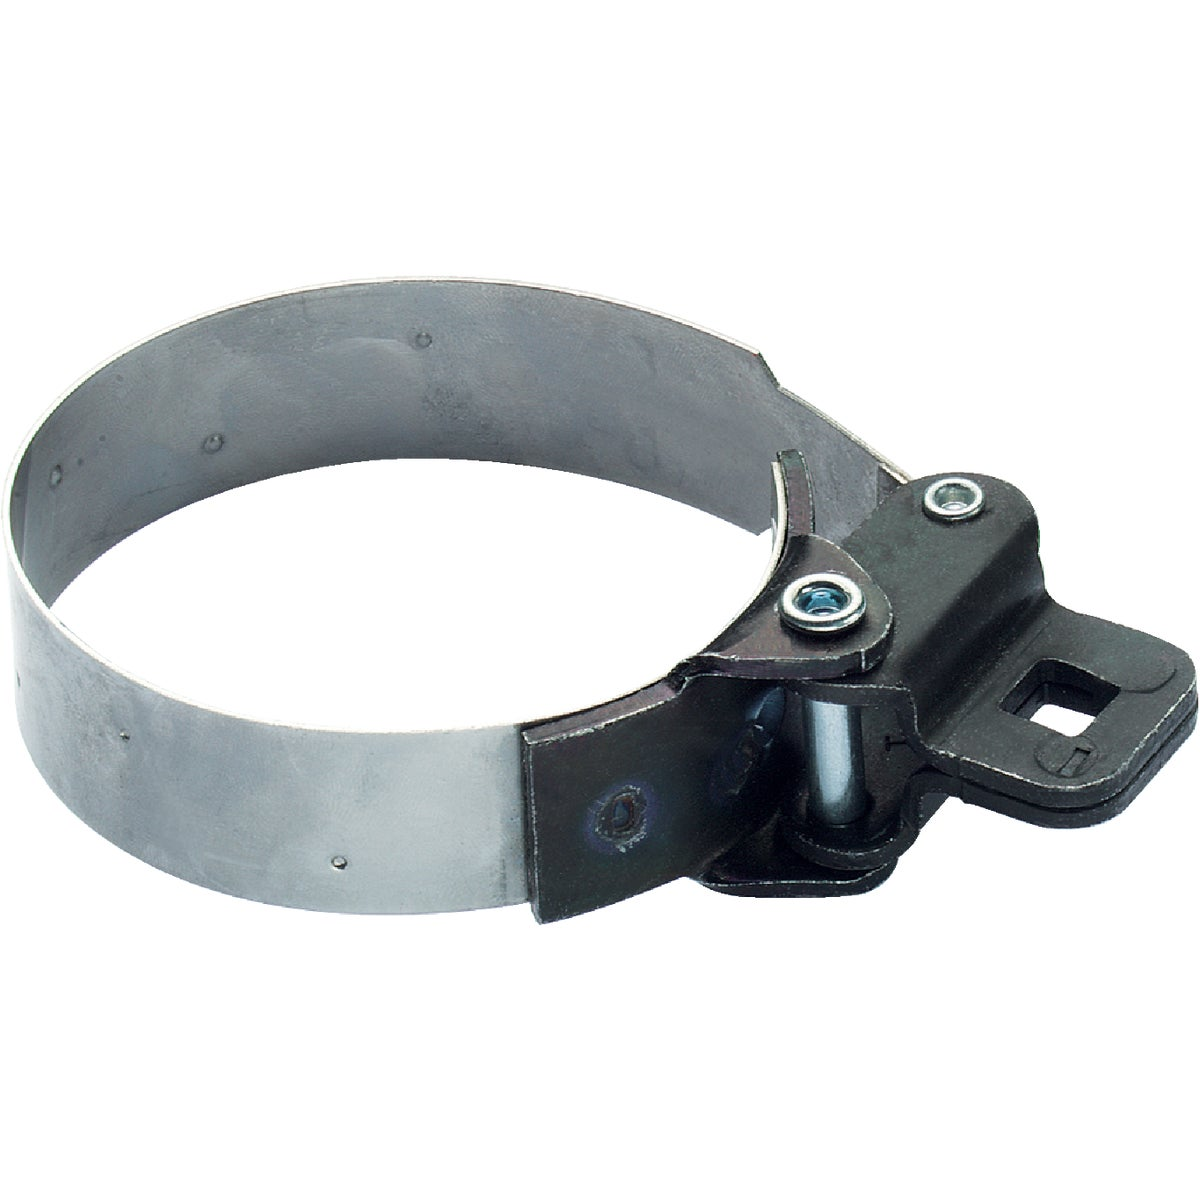 "3/8"" SQ FILTER WRENCH - 70-635 by Plews  Lubrimatic"